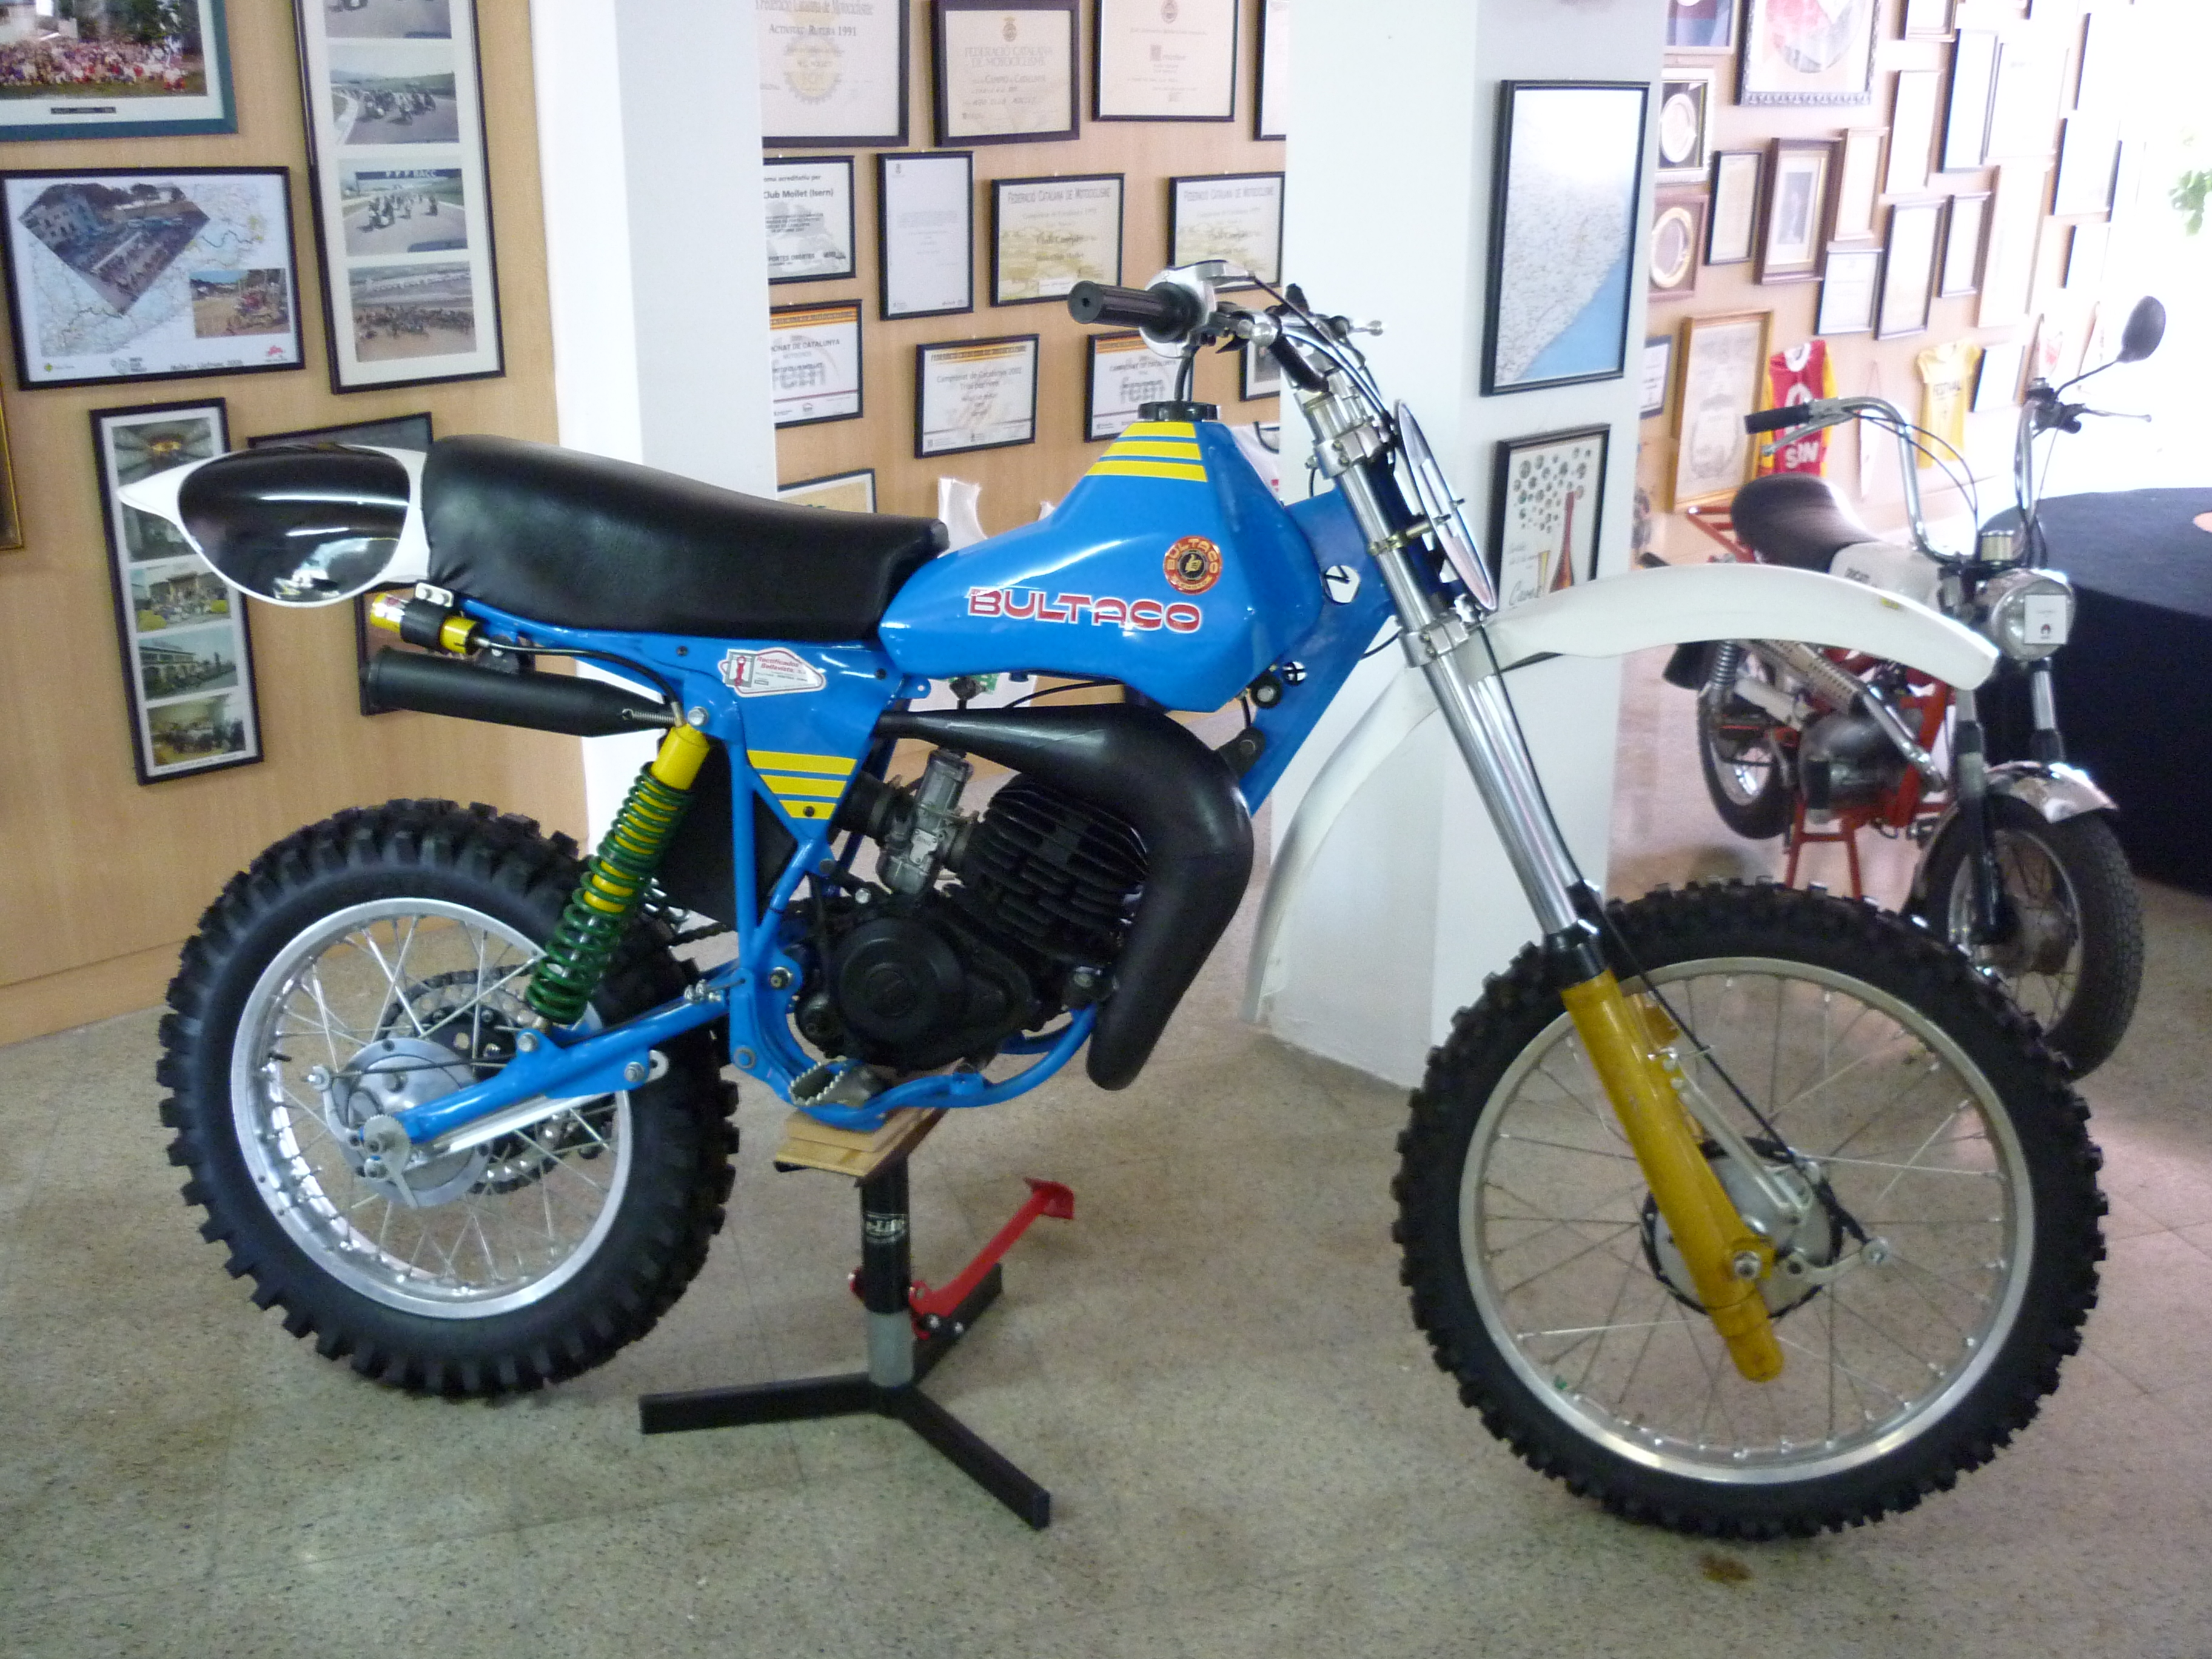 Bultaco pursang photo - 3